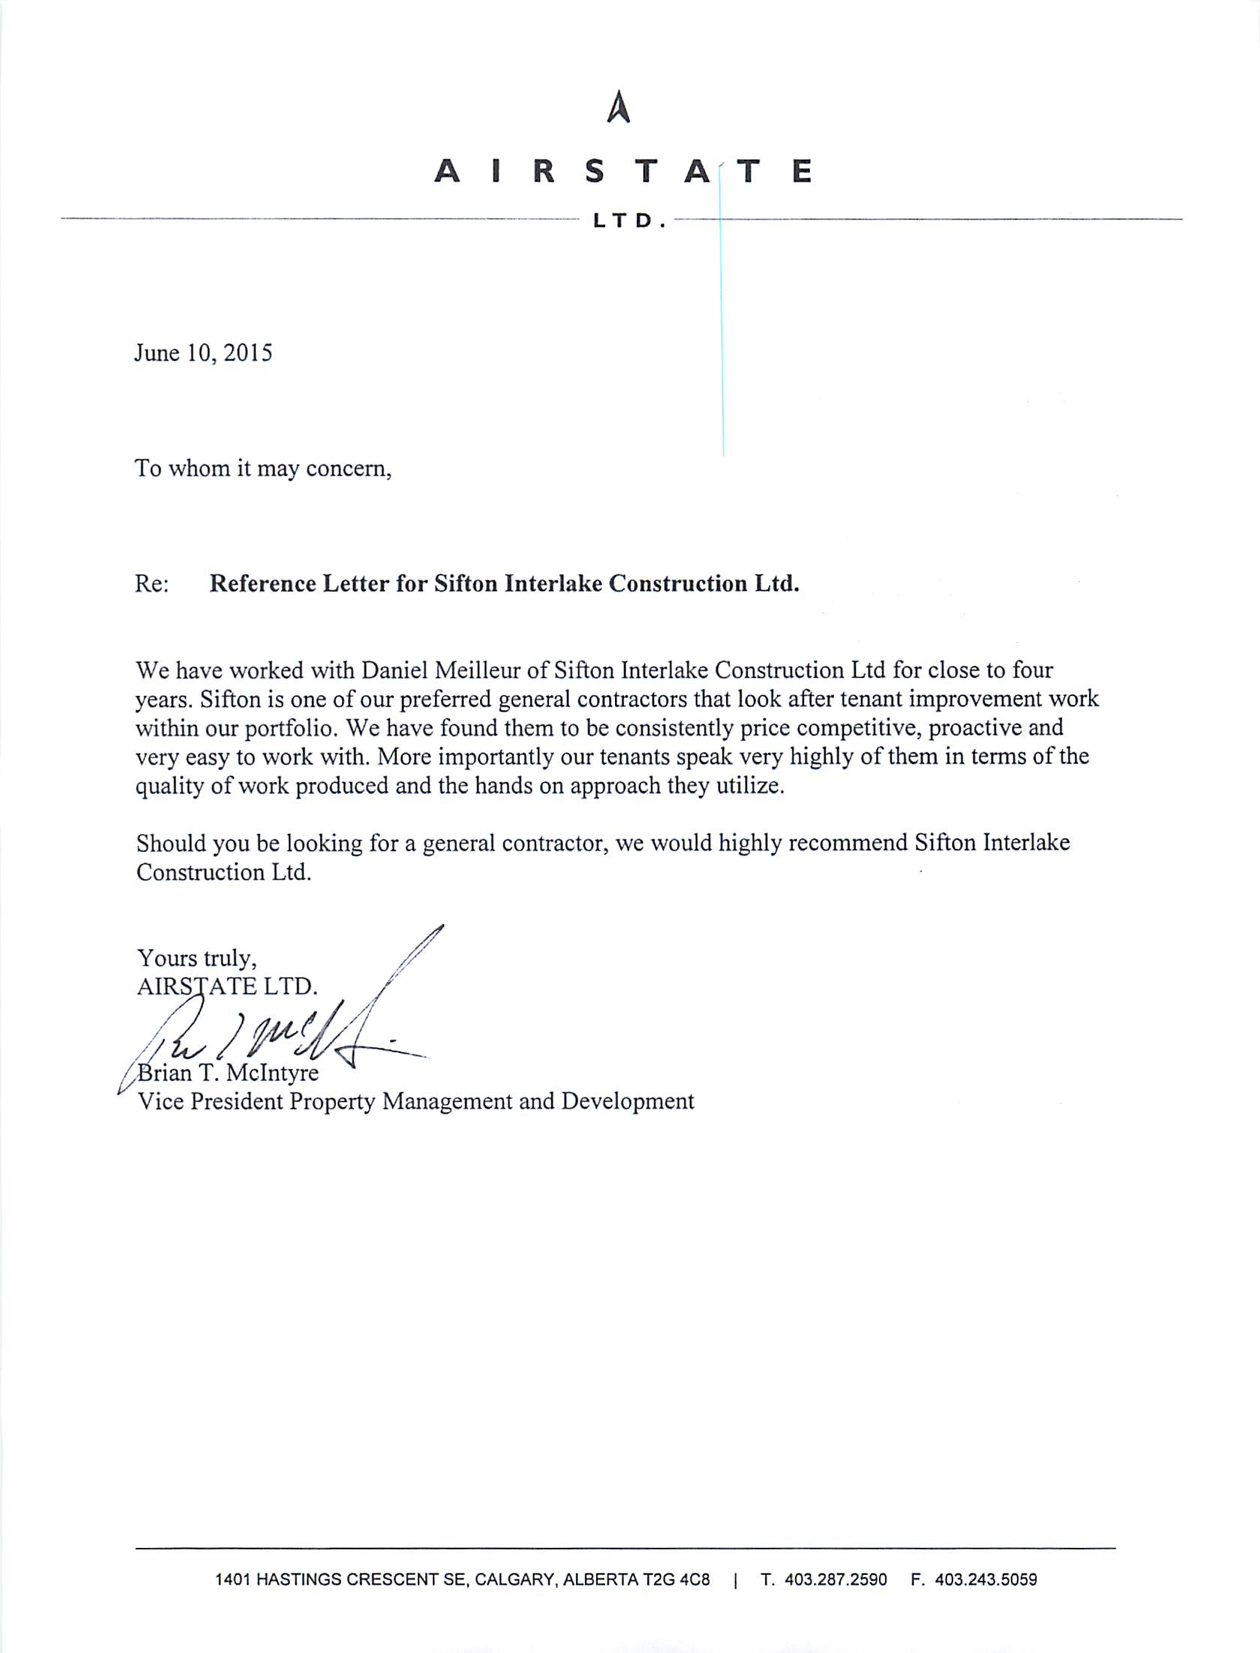 Airstate LTD Letter Of Reference